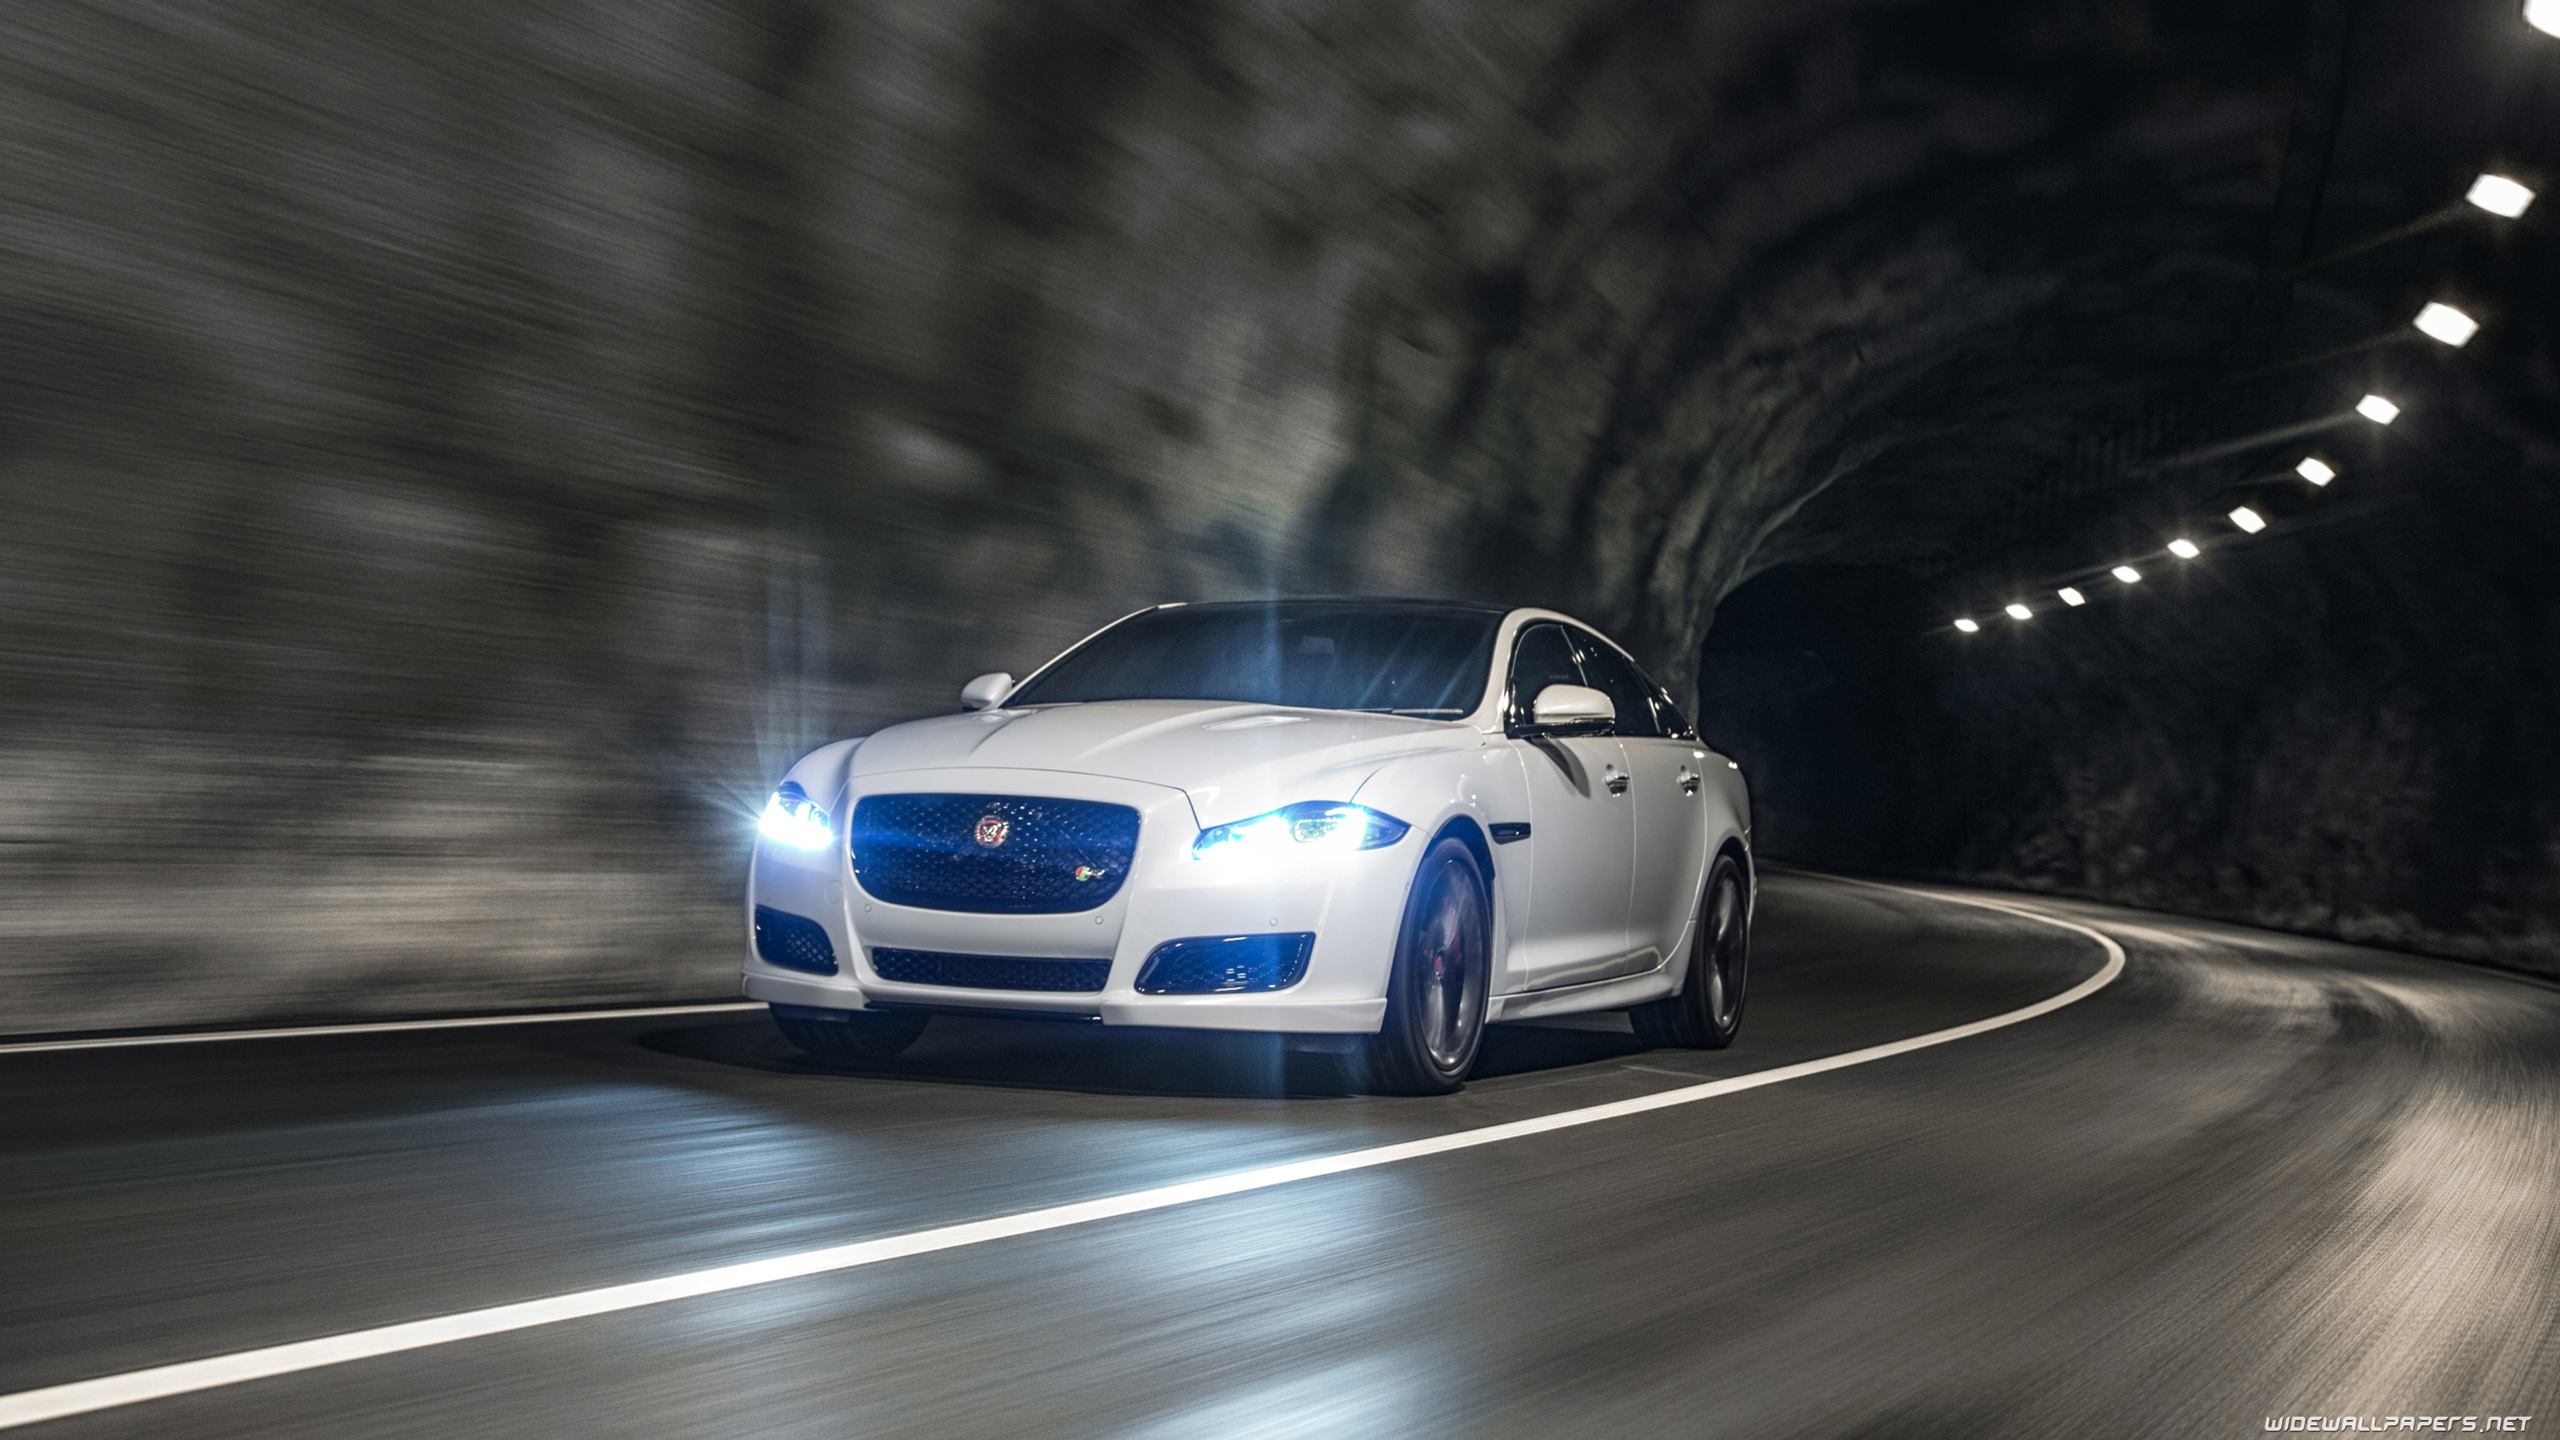 Jaguar Xe Wallpaper Hd Jaguar Cars Images Hd 2560x1440 Wallpaper Teahub Io